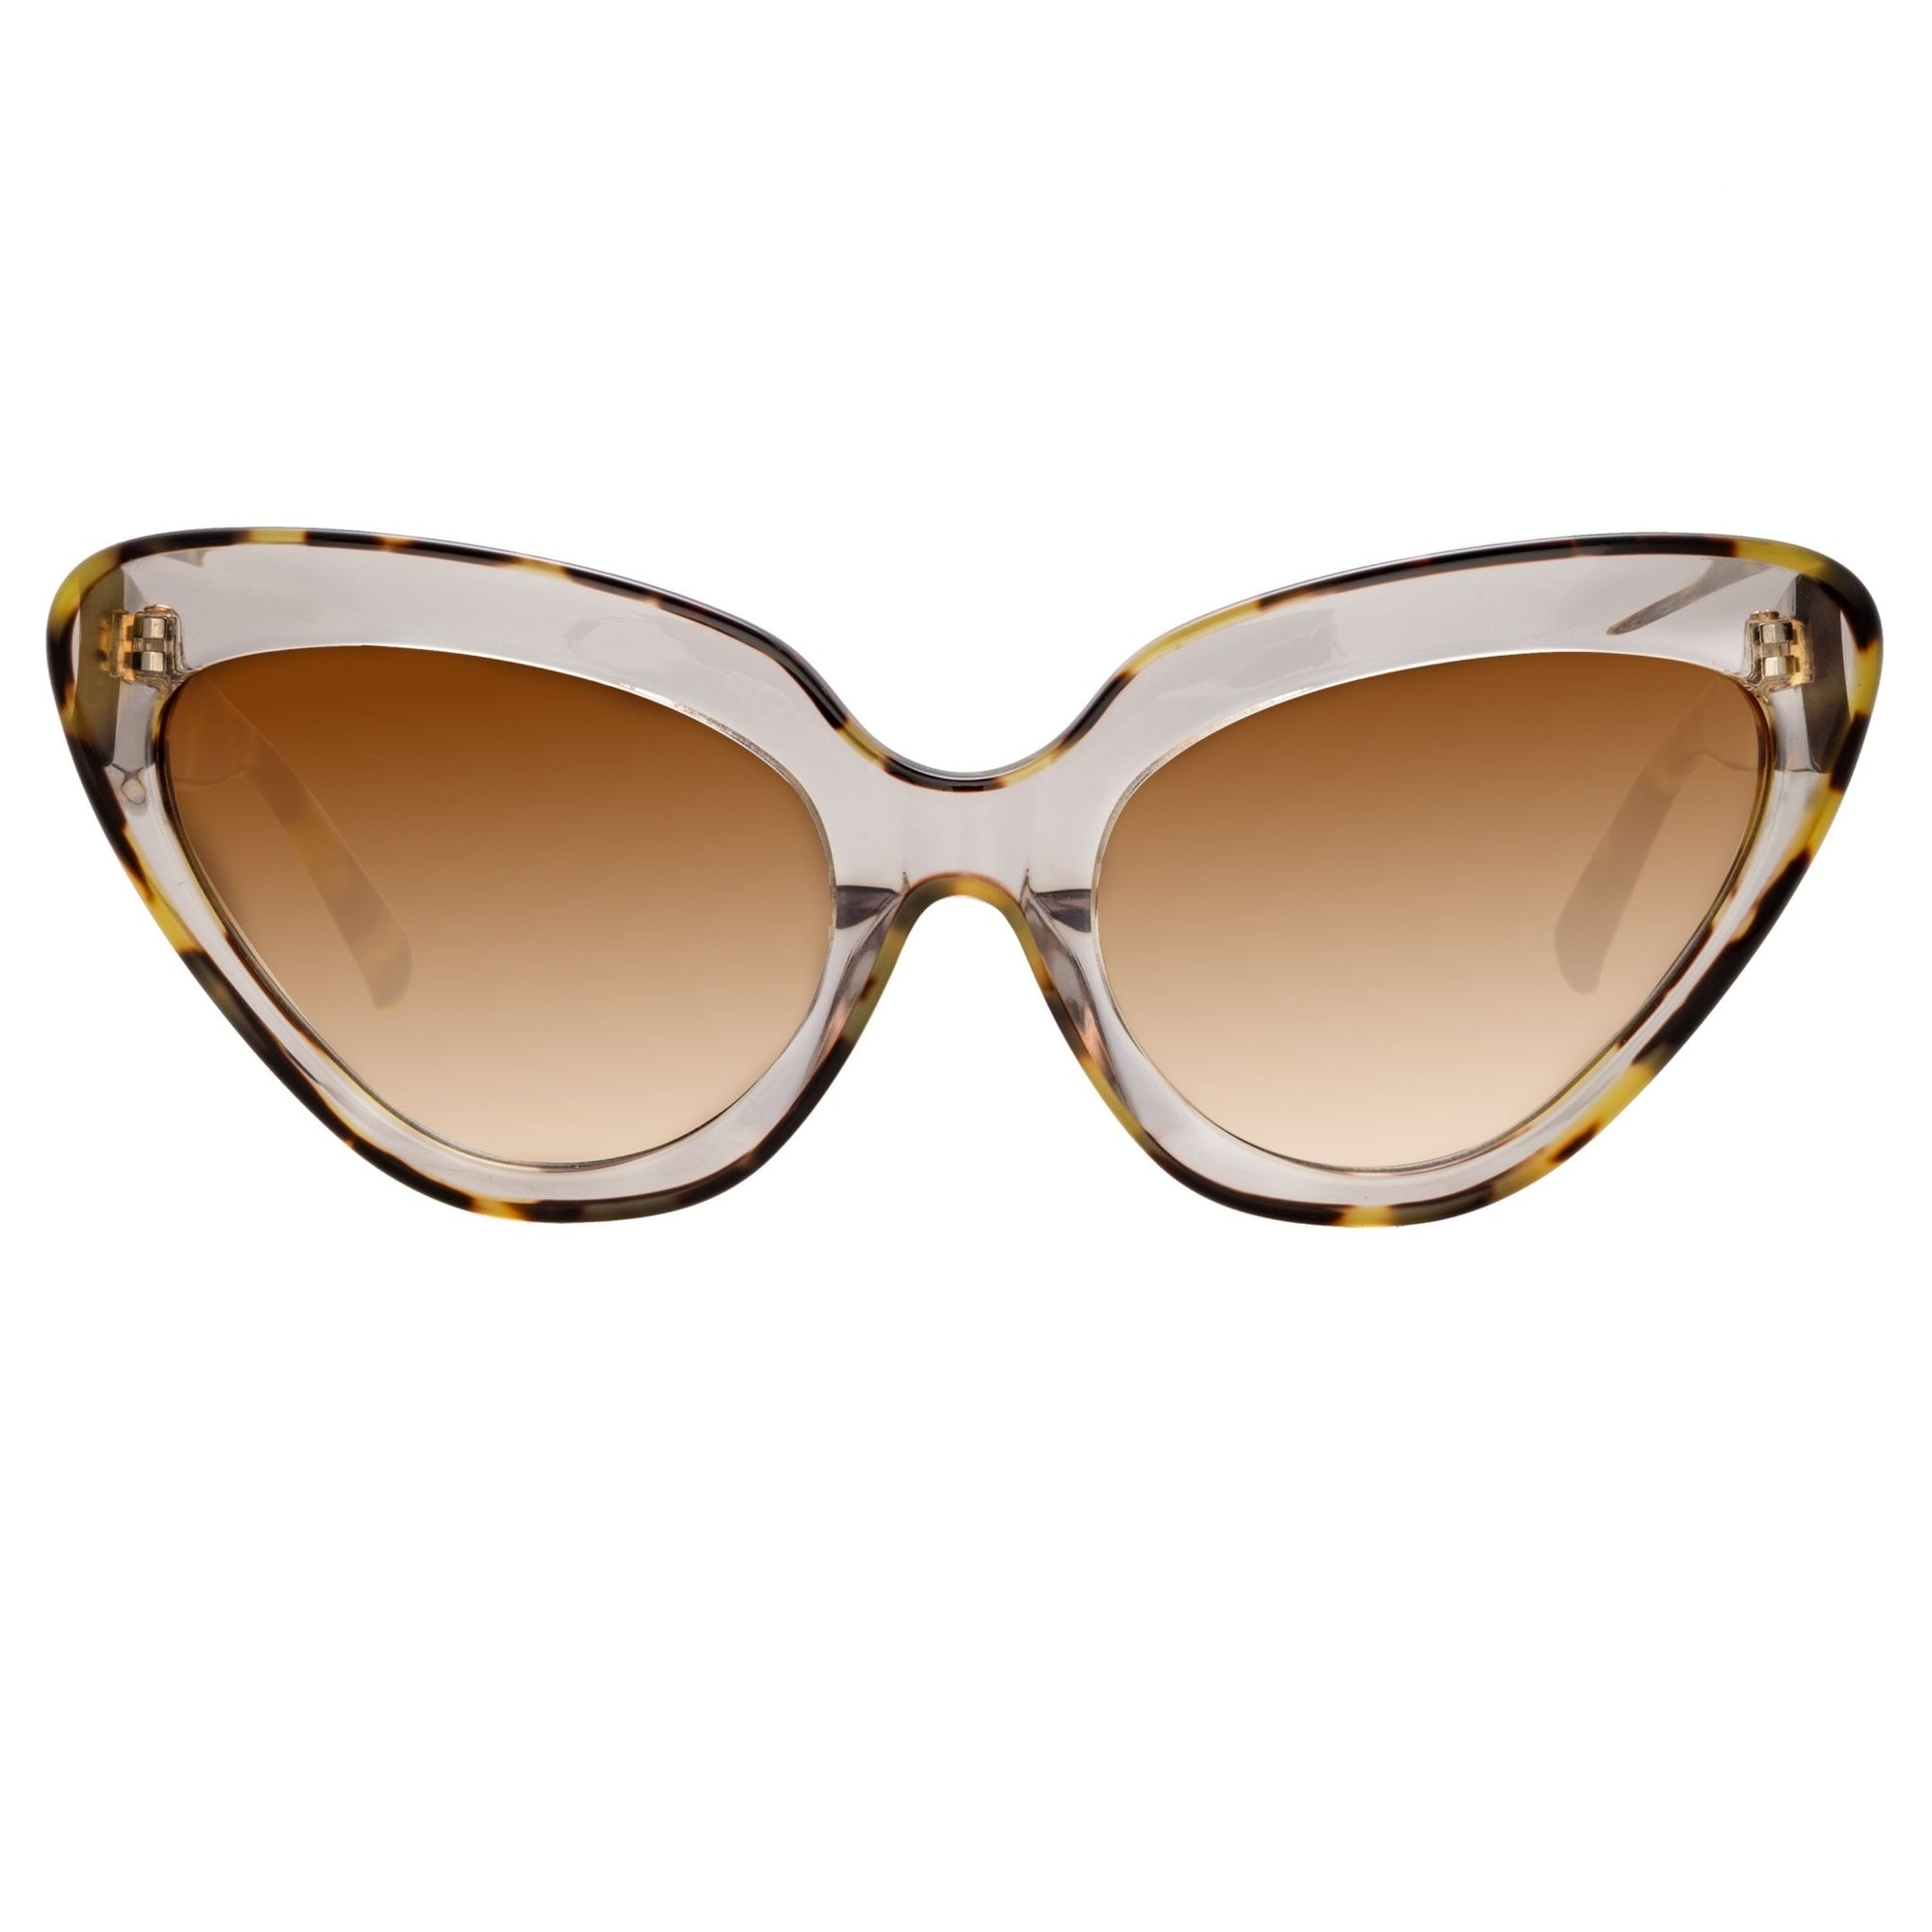 Erdem Women Sunglasses Cat Eye Clear Tortoiseshell With Brown Graduated Lenses - EDM29C1SUN - Watches & Crystals